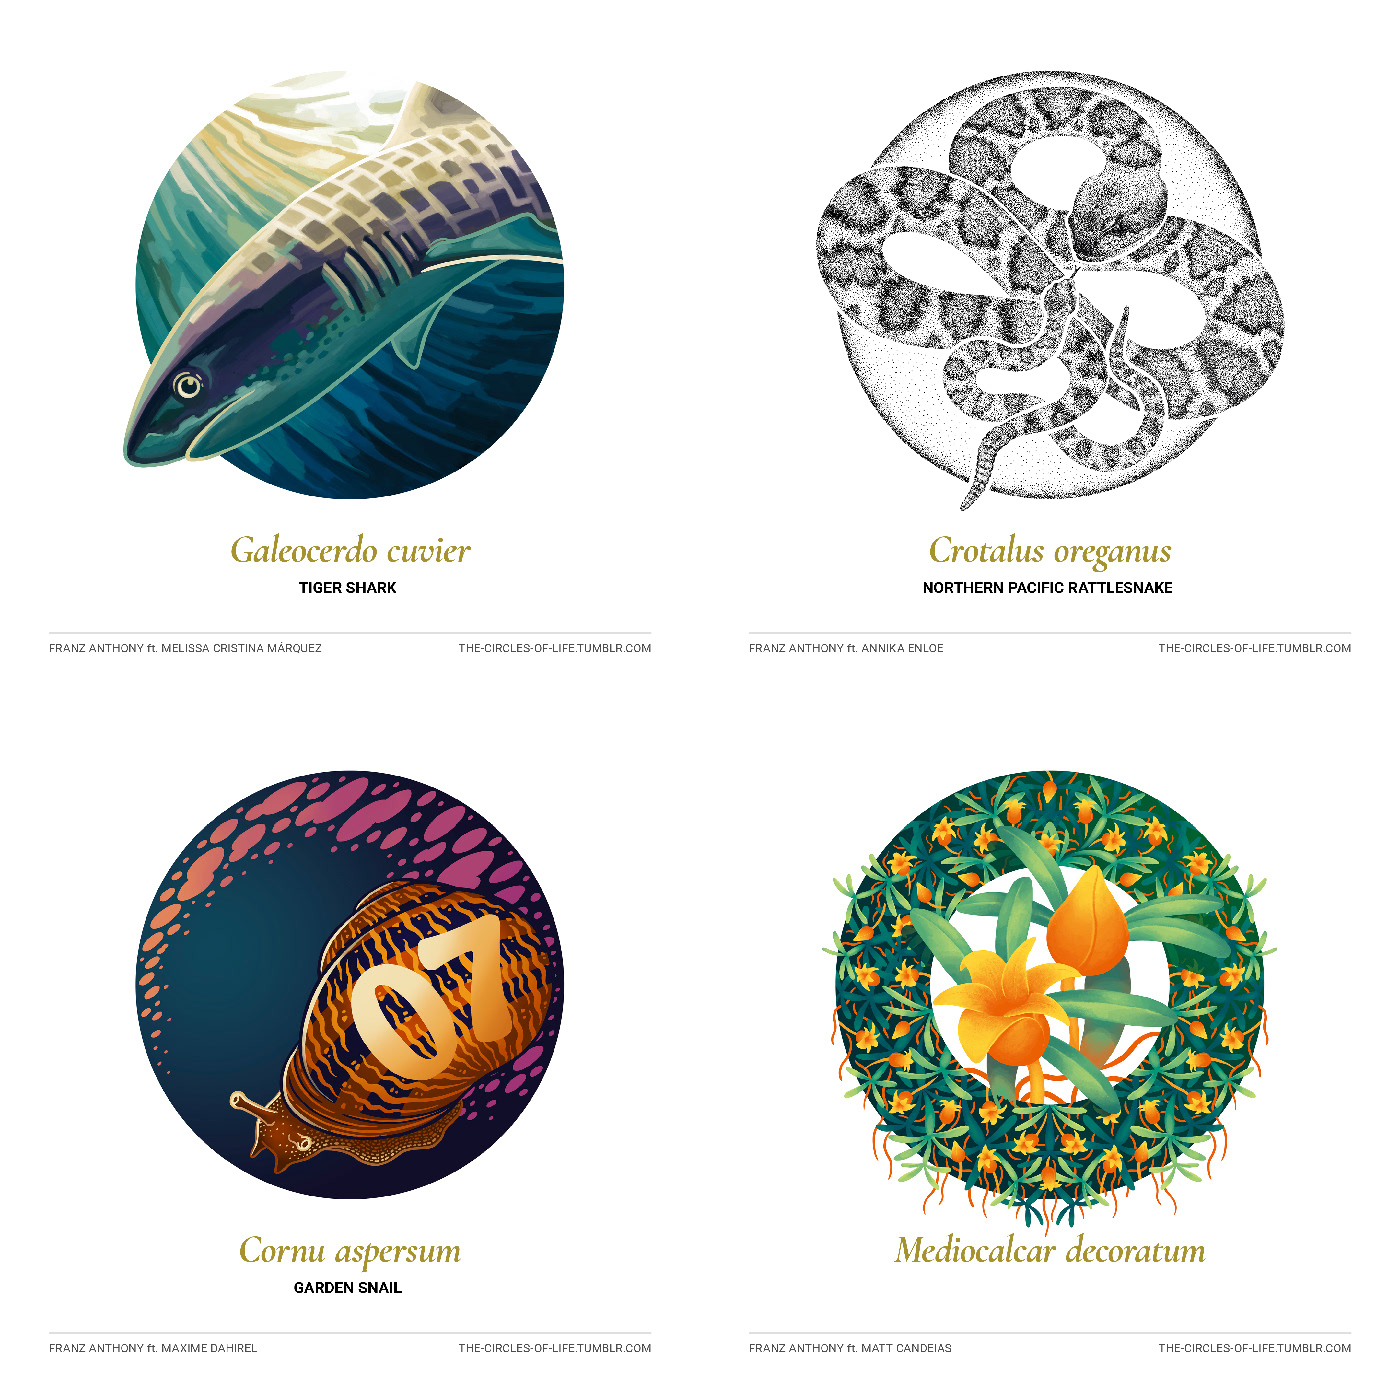 plants animals science Nature creatures floral circle White Minimalism biology